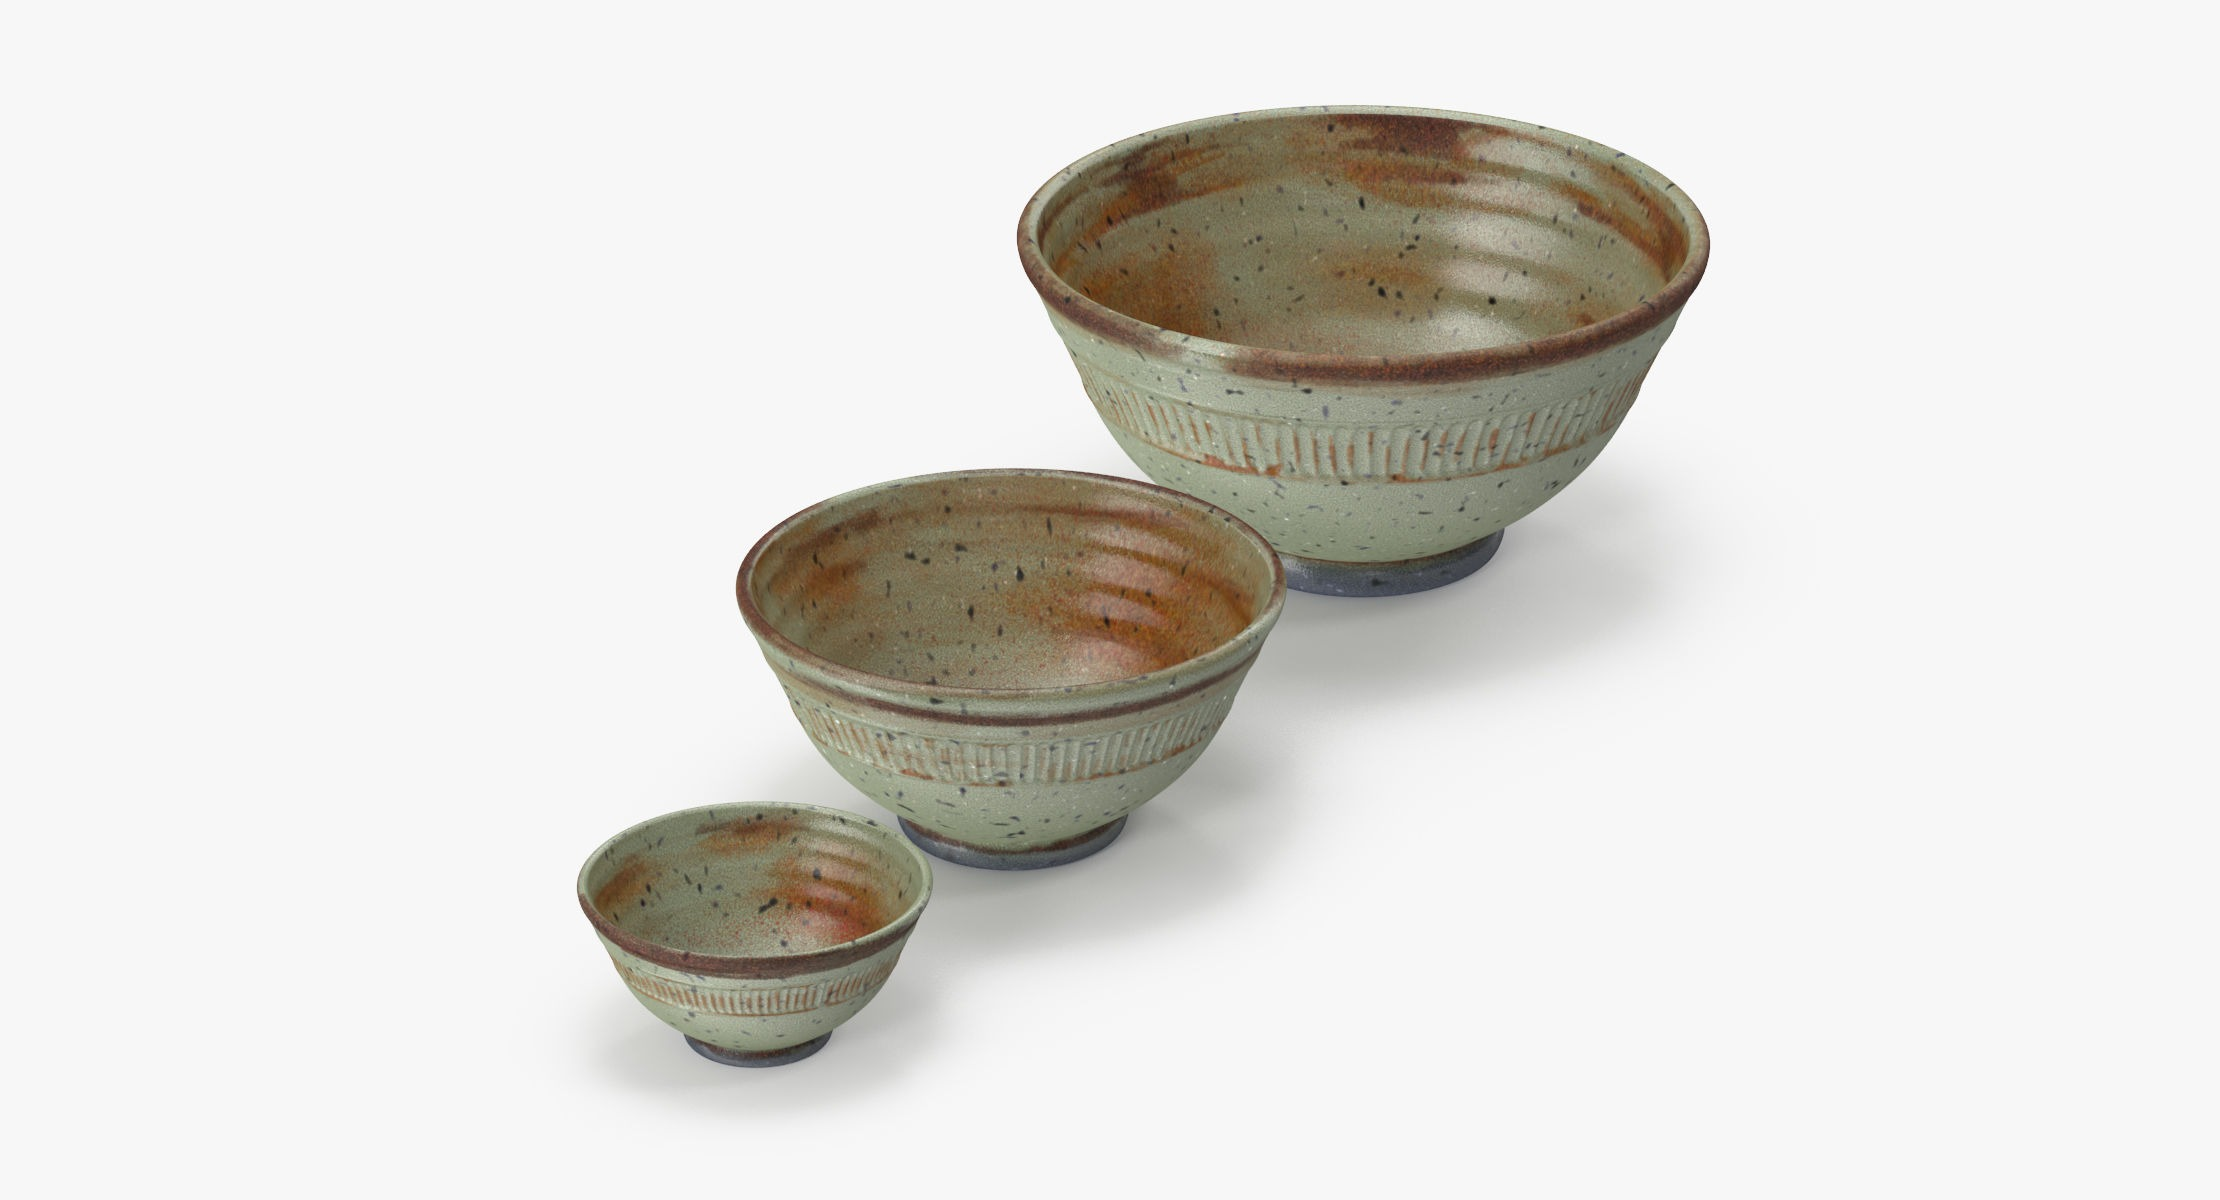 Pottery Bowl 01 - reel 1